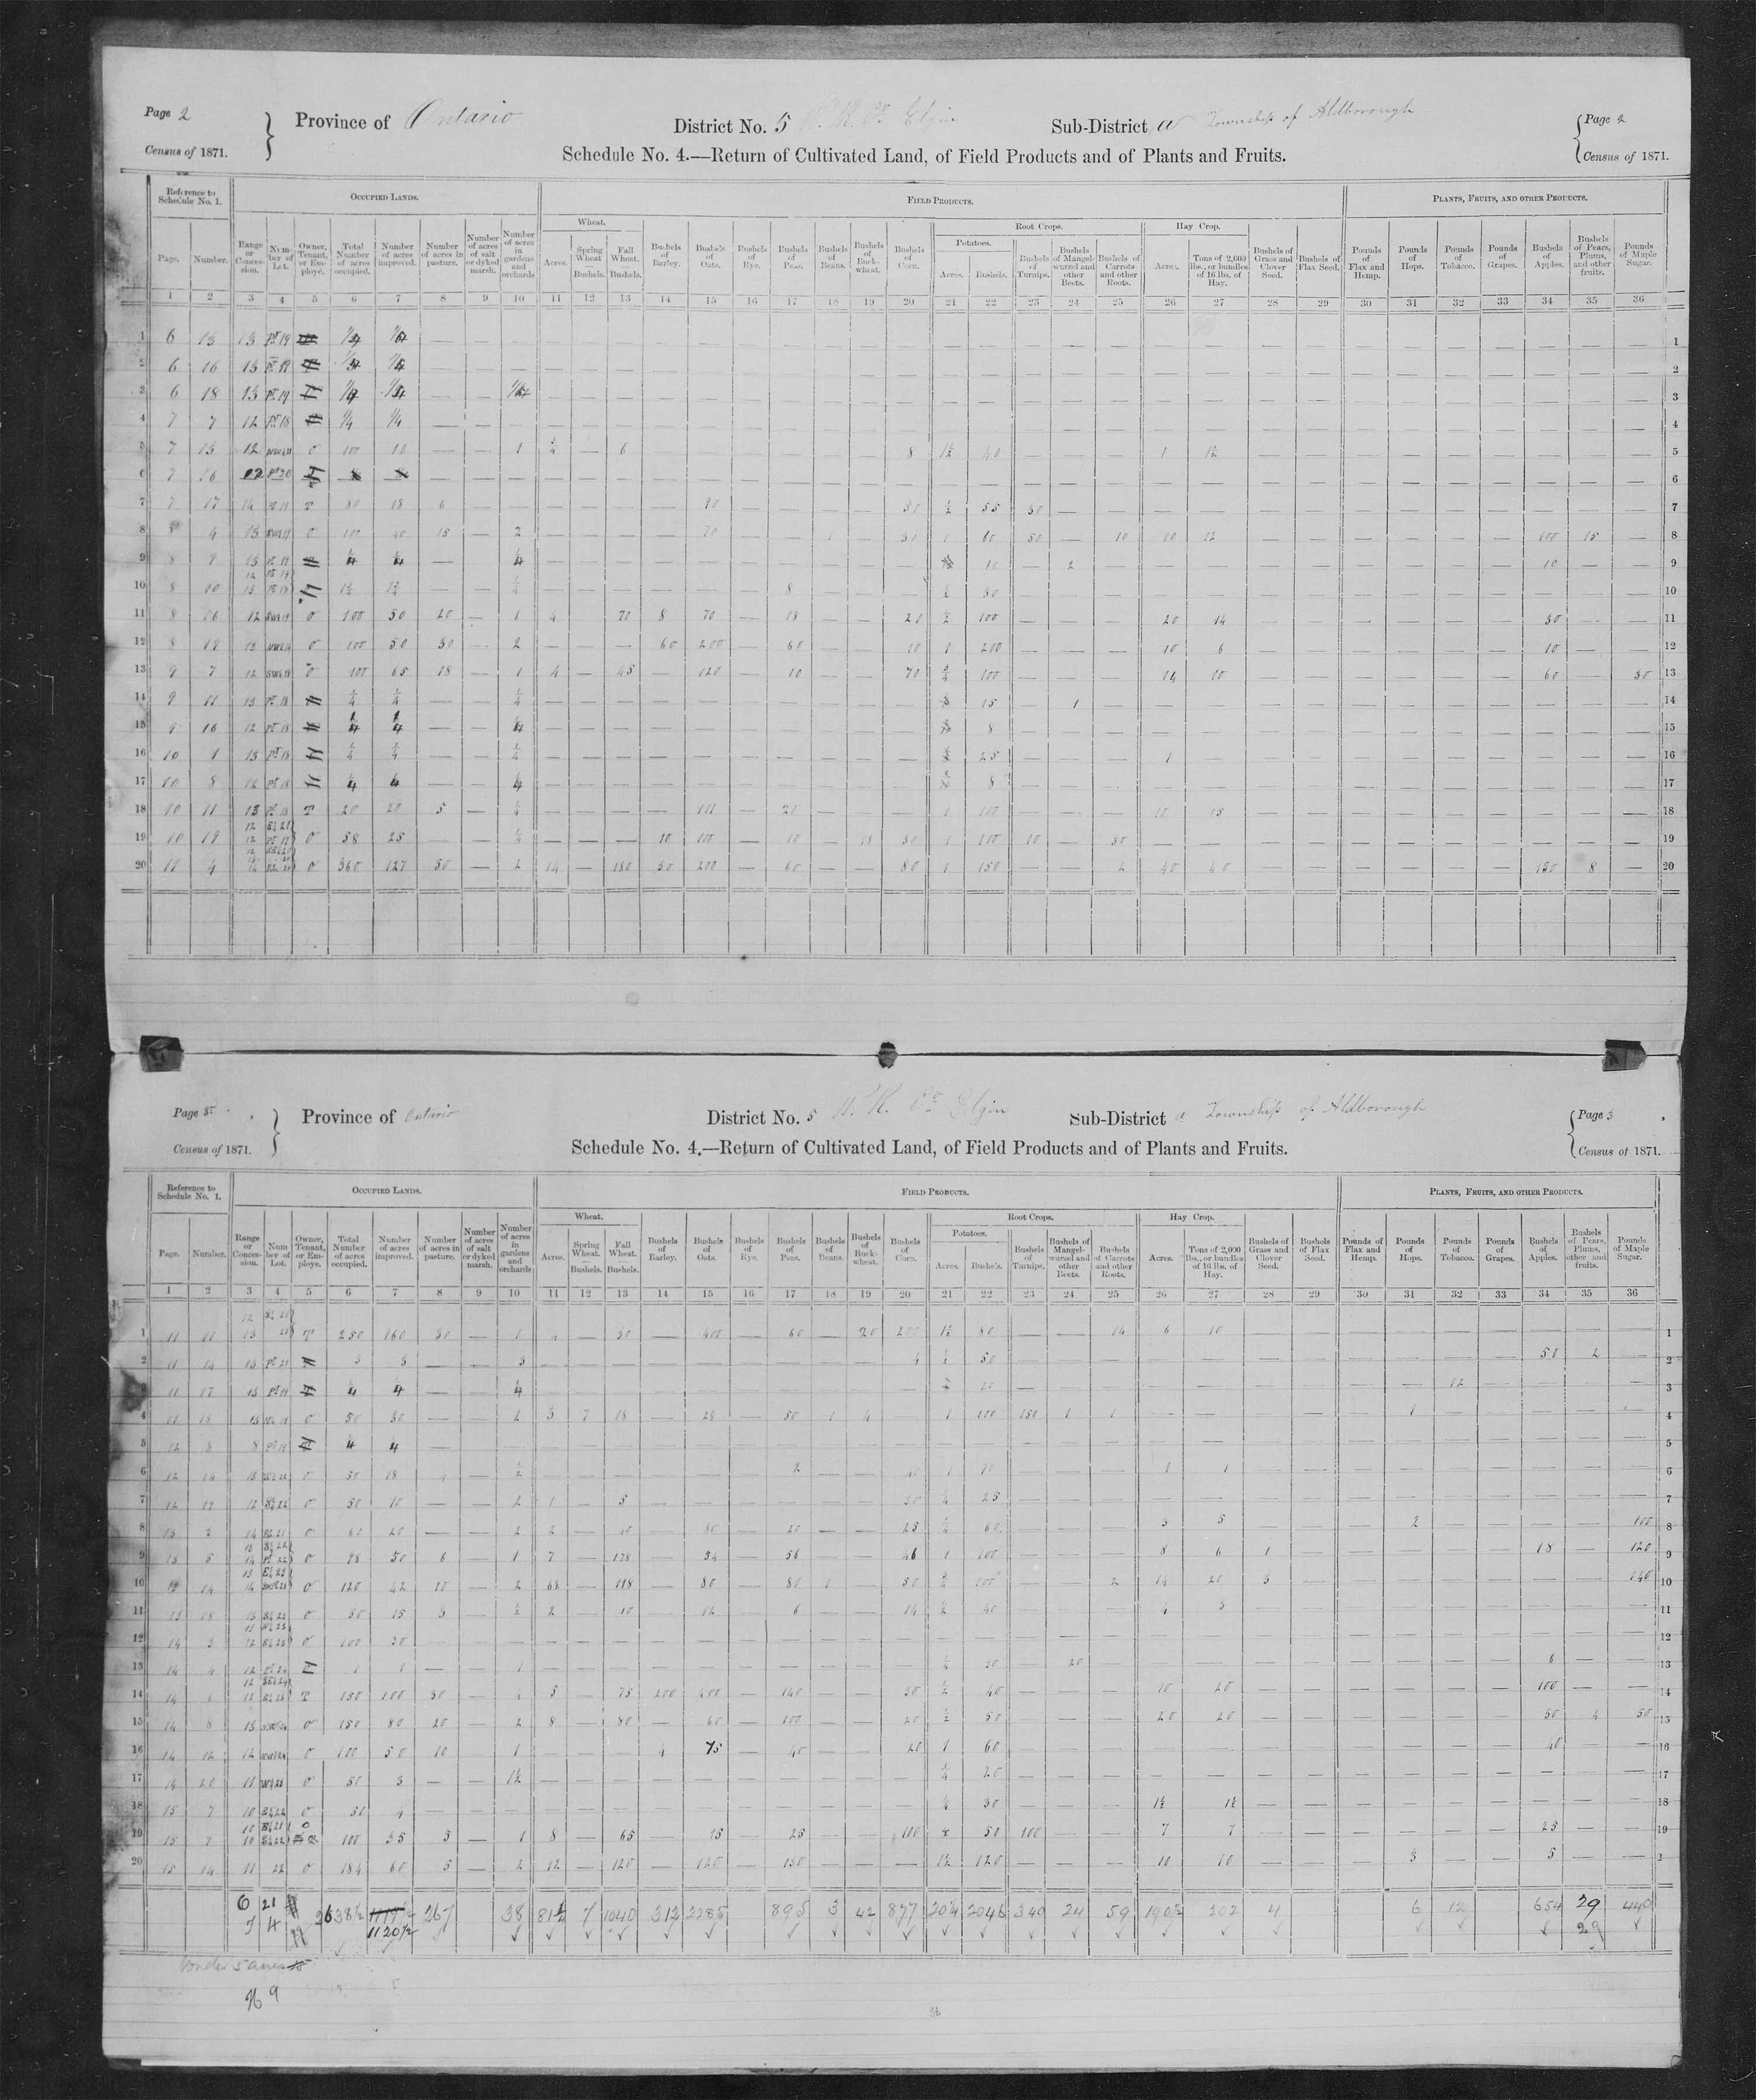 Title: Census of Canada, 1871 - Mikan Number: 142105 - Microform: c-9897